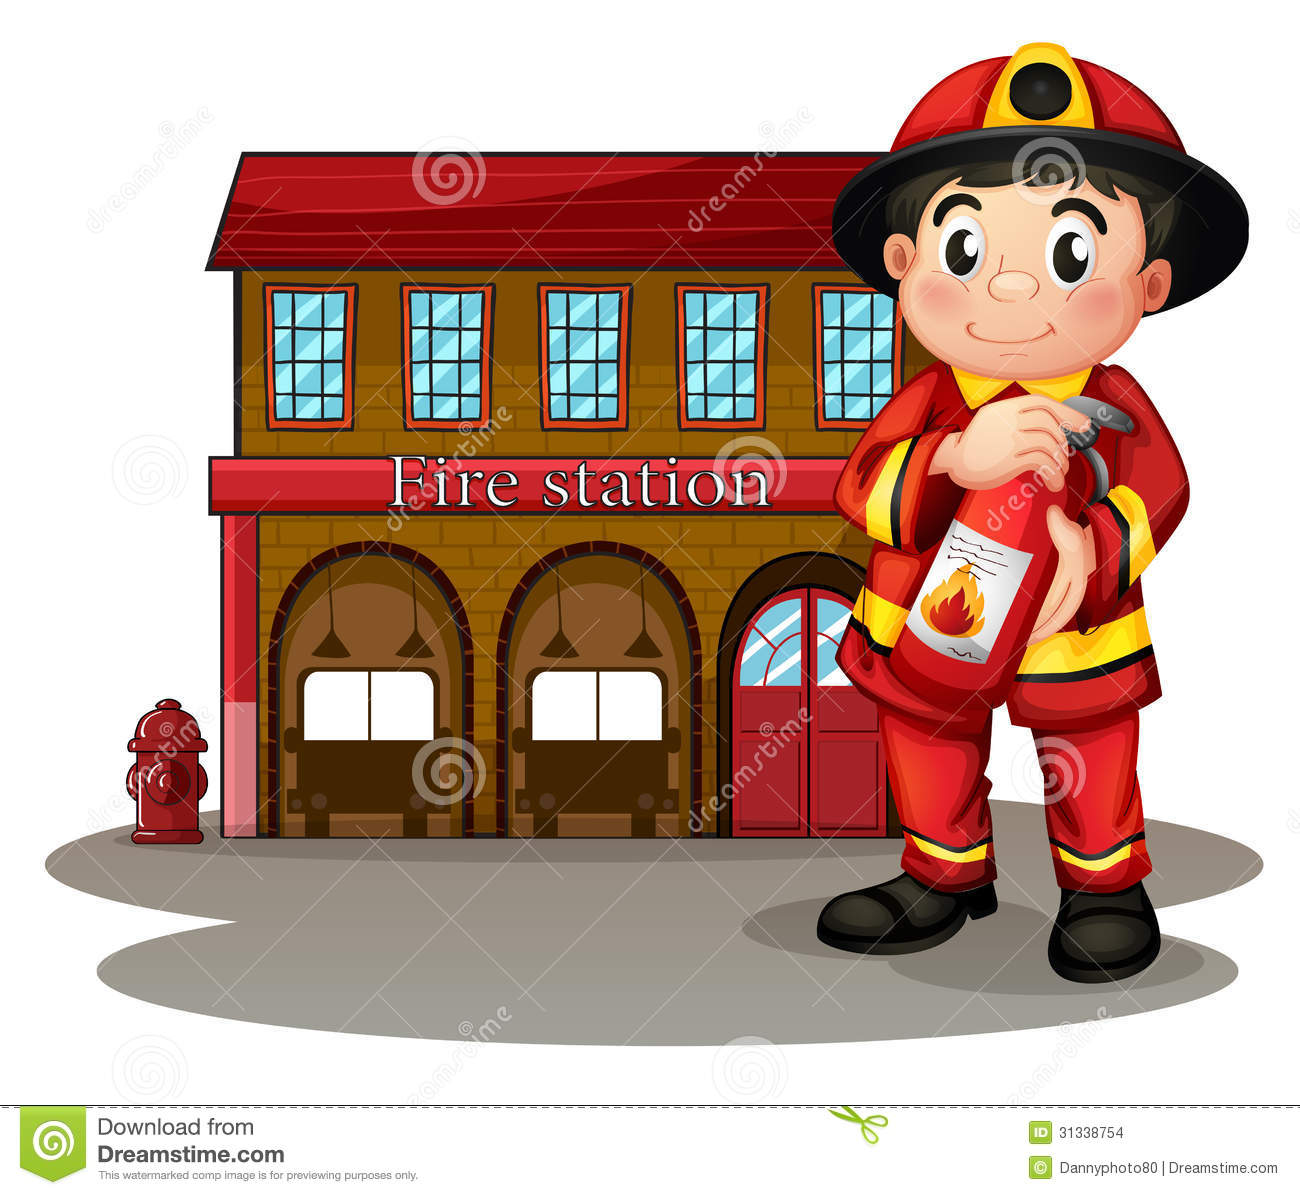 a fireman in front of a fire station holding a fire fire truck images clip art free Fire Truck Coloring Pages